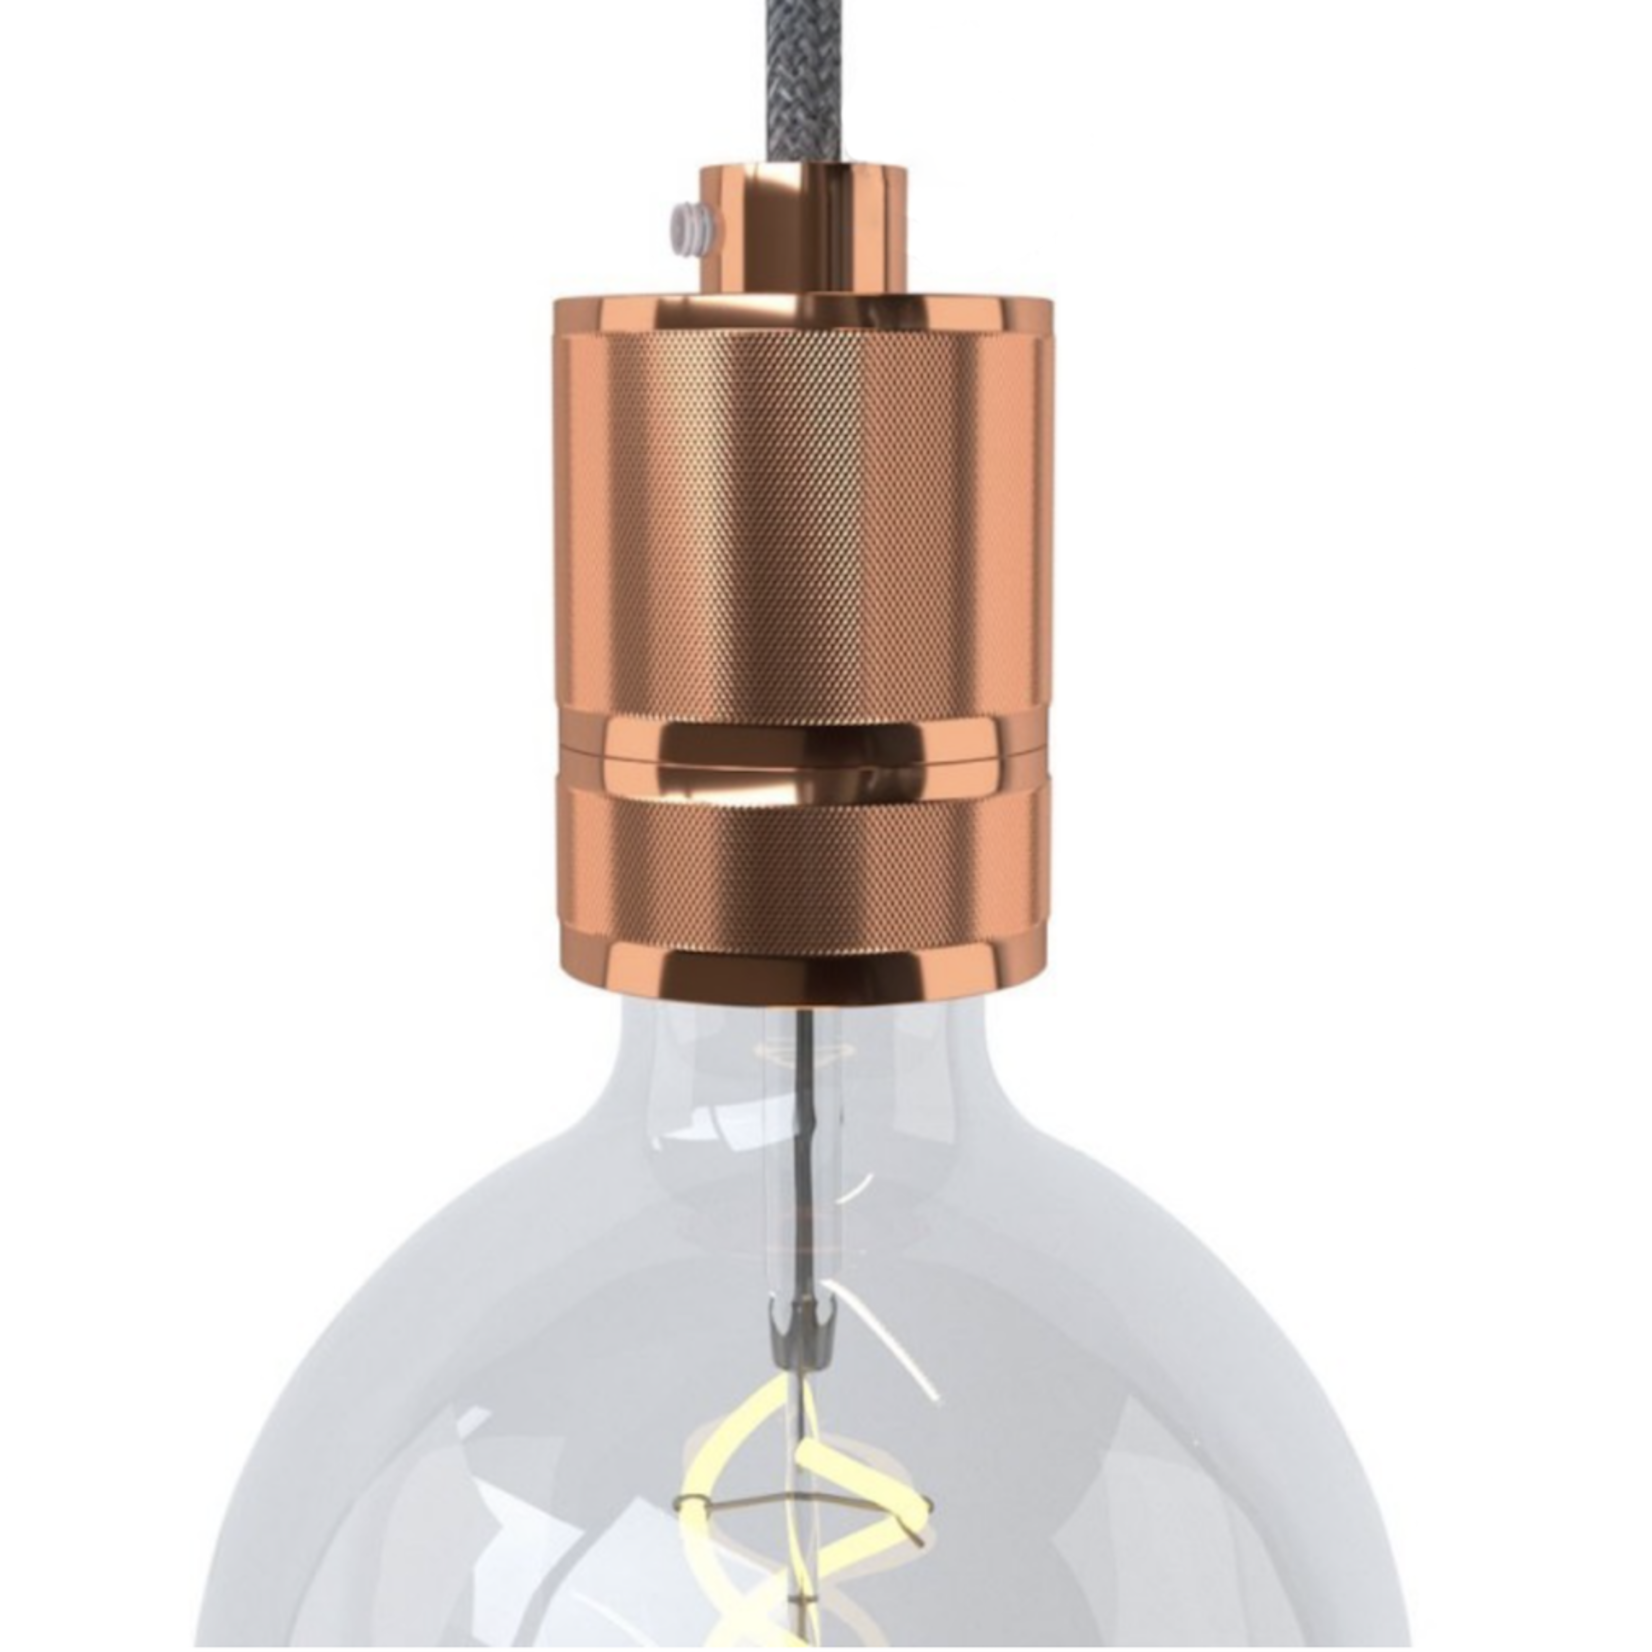 CCIT E27 Copper Lampholder with shade ring in milled aluminium, copper finish, provided with metal strain relief clamp